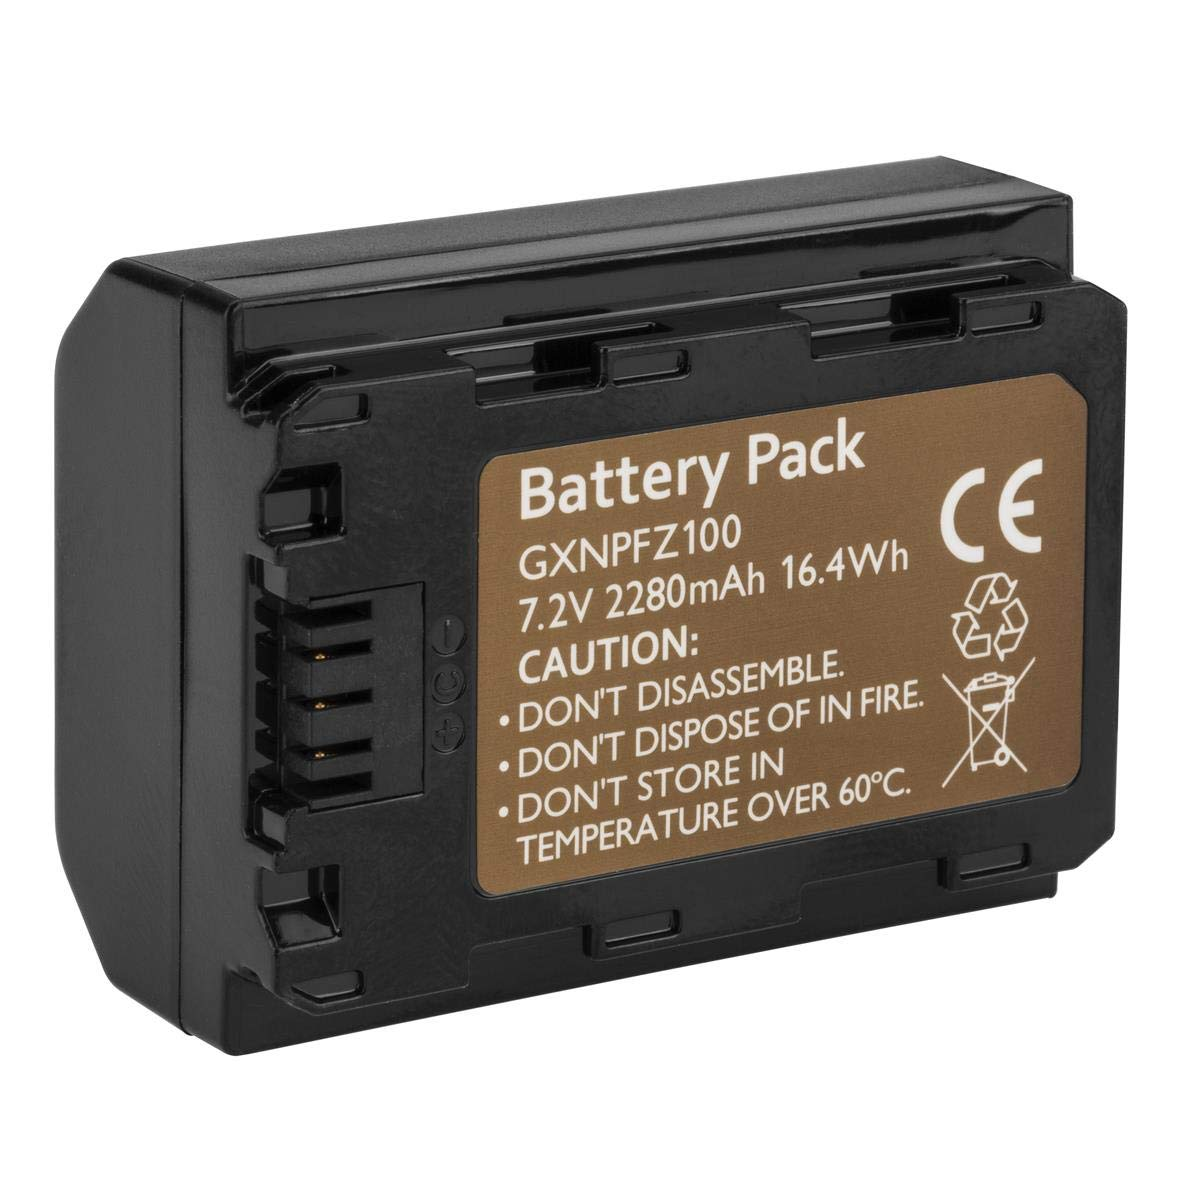 Green Extreme Replacement for Sony NP-FZ100 Battery 2280mAh for Sony Alpha 9, A9, Alpha 9R, A9R, Alpha9S, A7 RIII, A7R3, a7 III Camera A9R, Alpha 9S, A7 RIII, A7R3, a7 III Camera